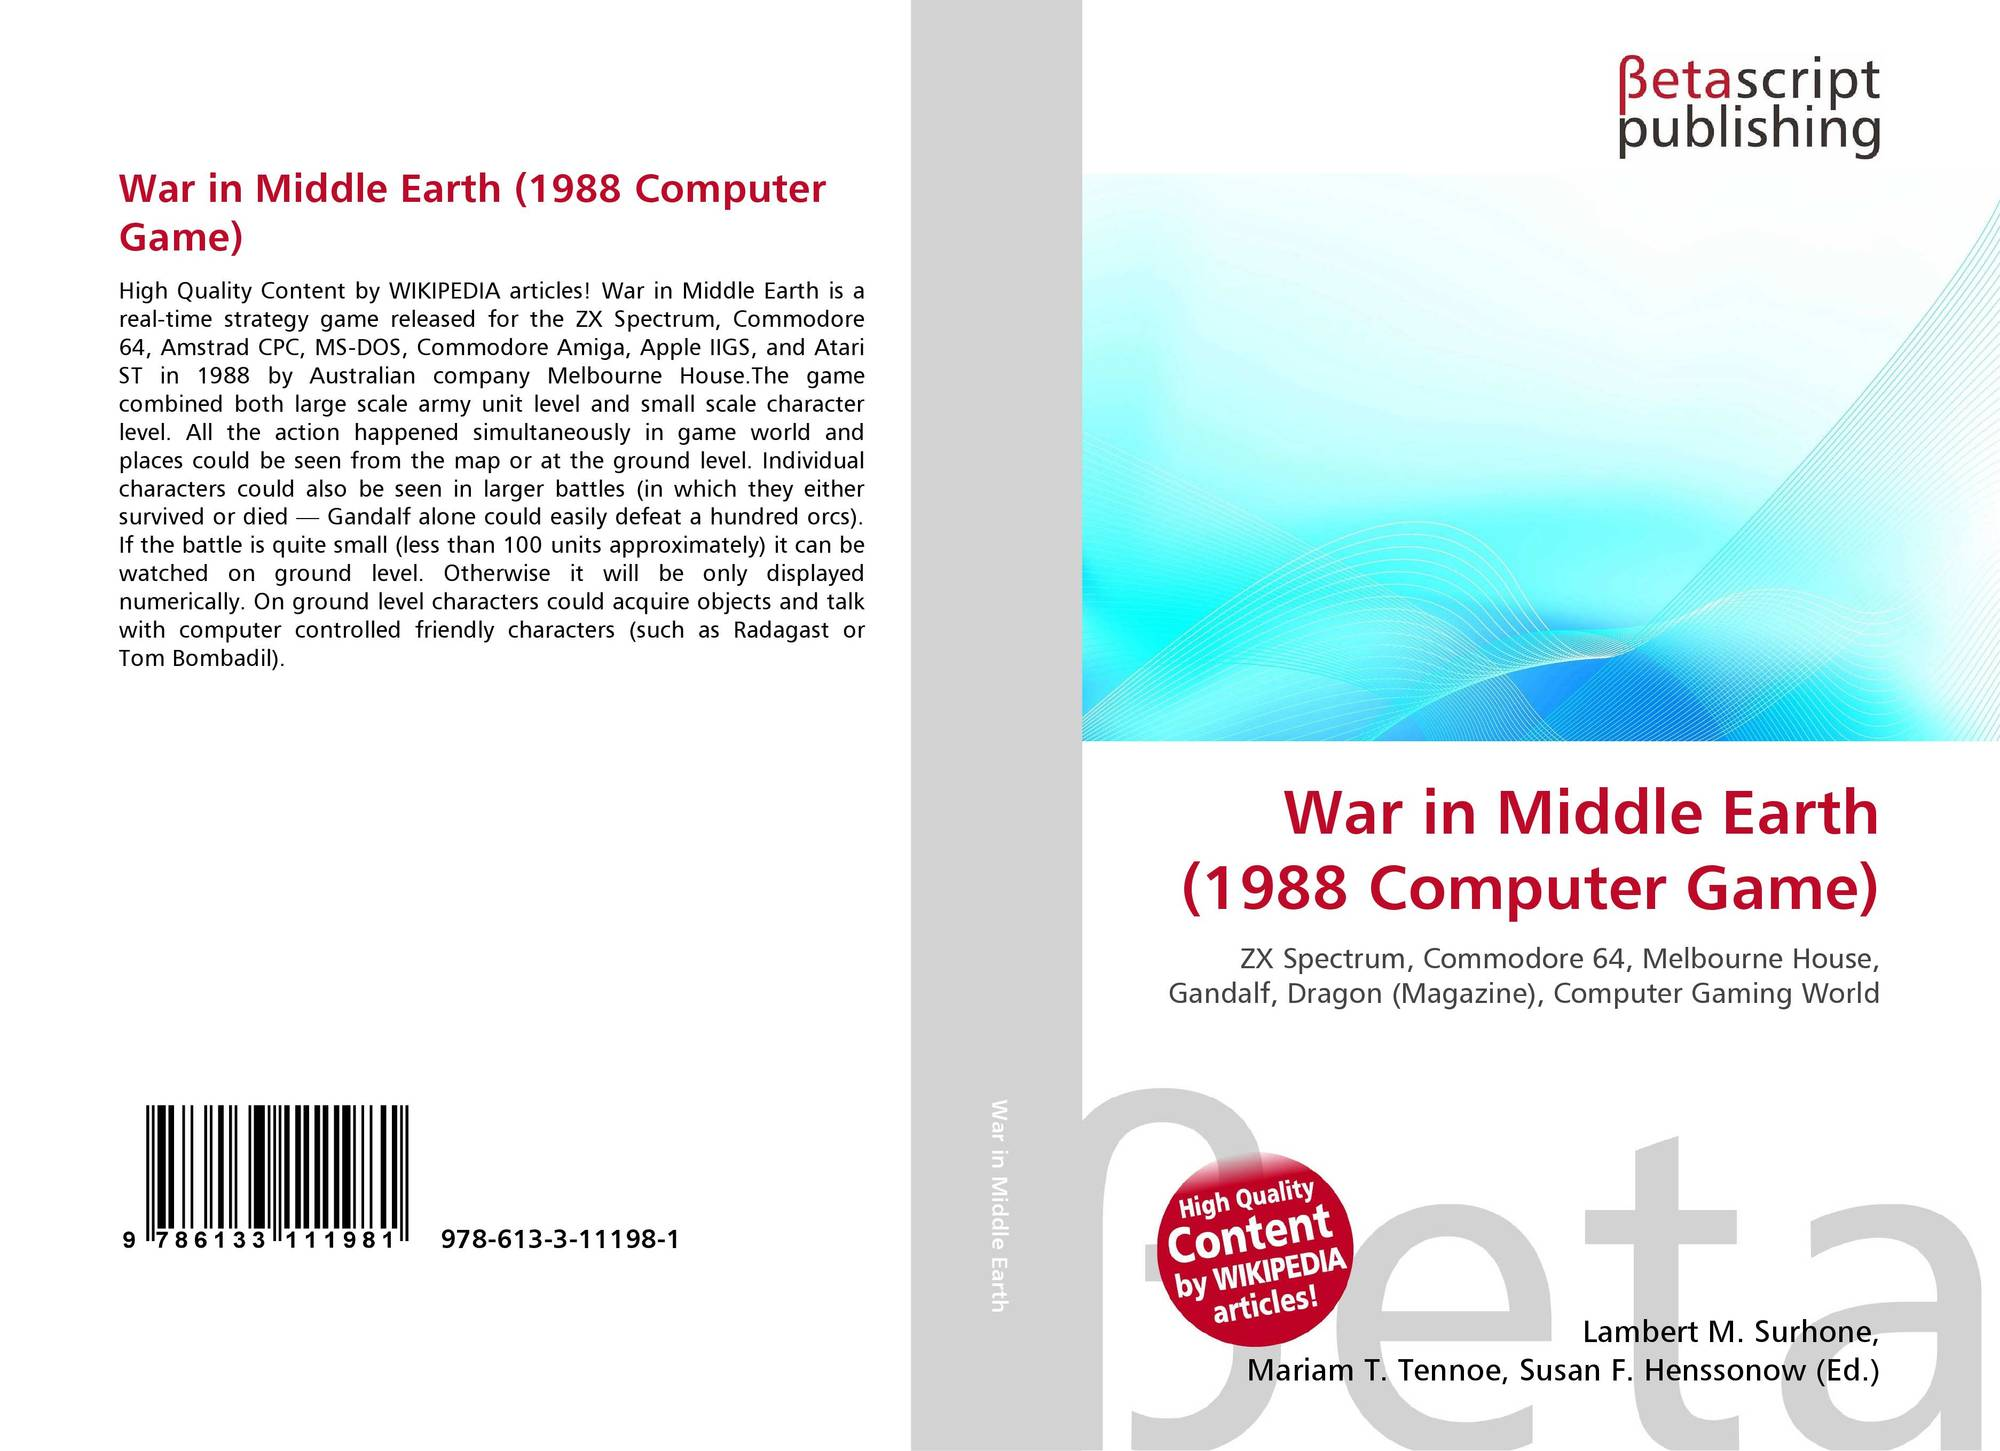 War in Middle Earth (1988 Computer Game), 978-613-3-11198-1